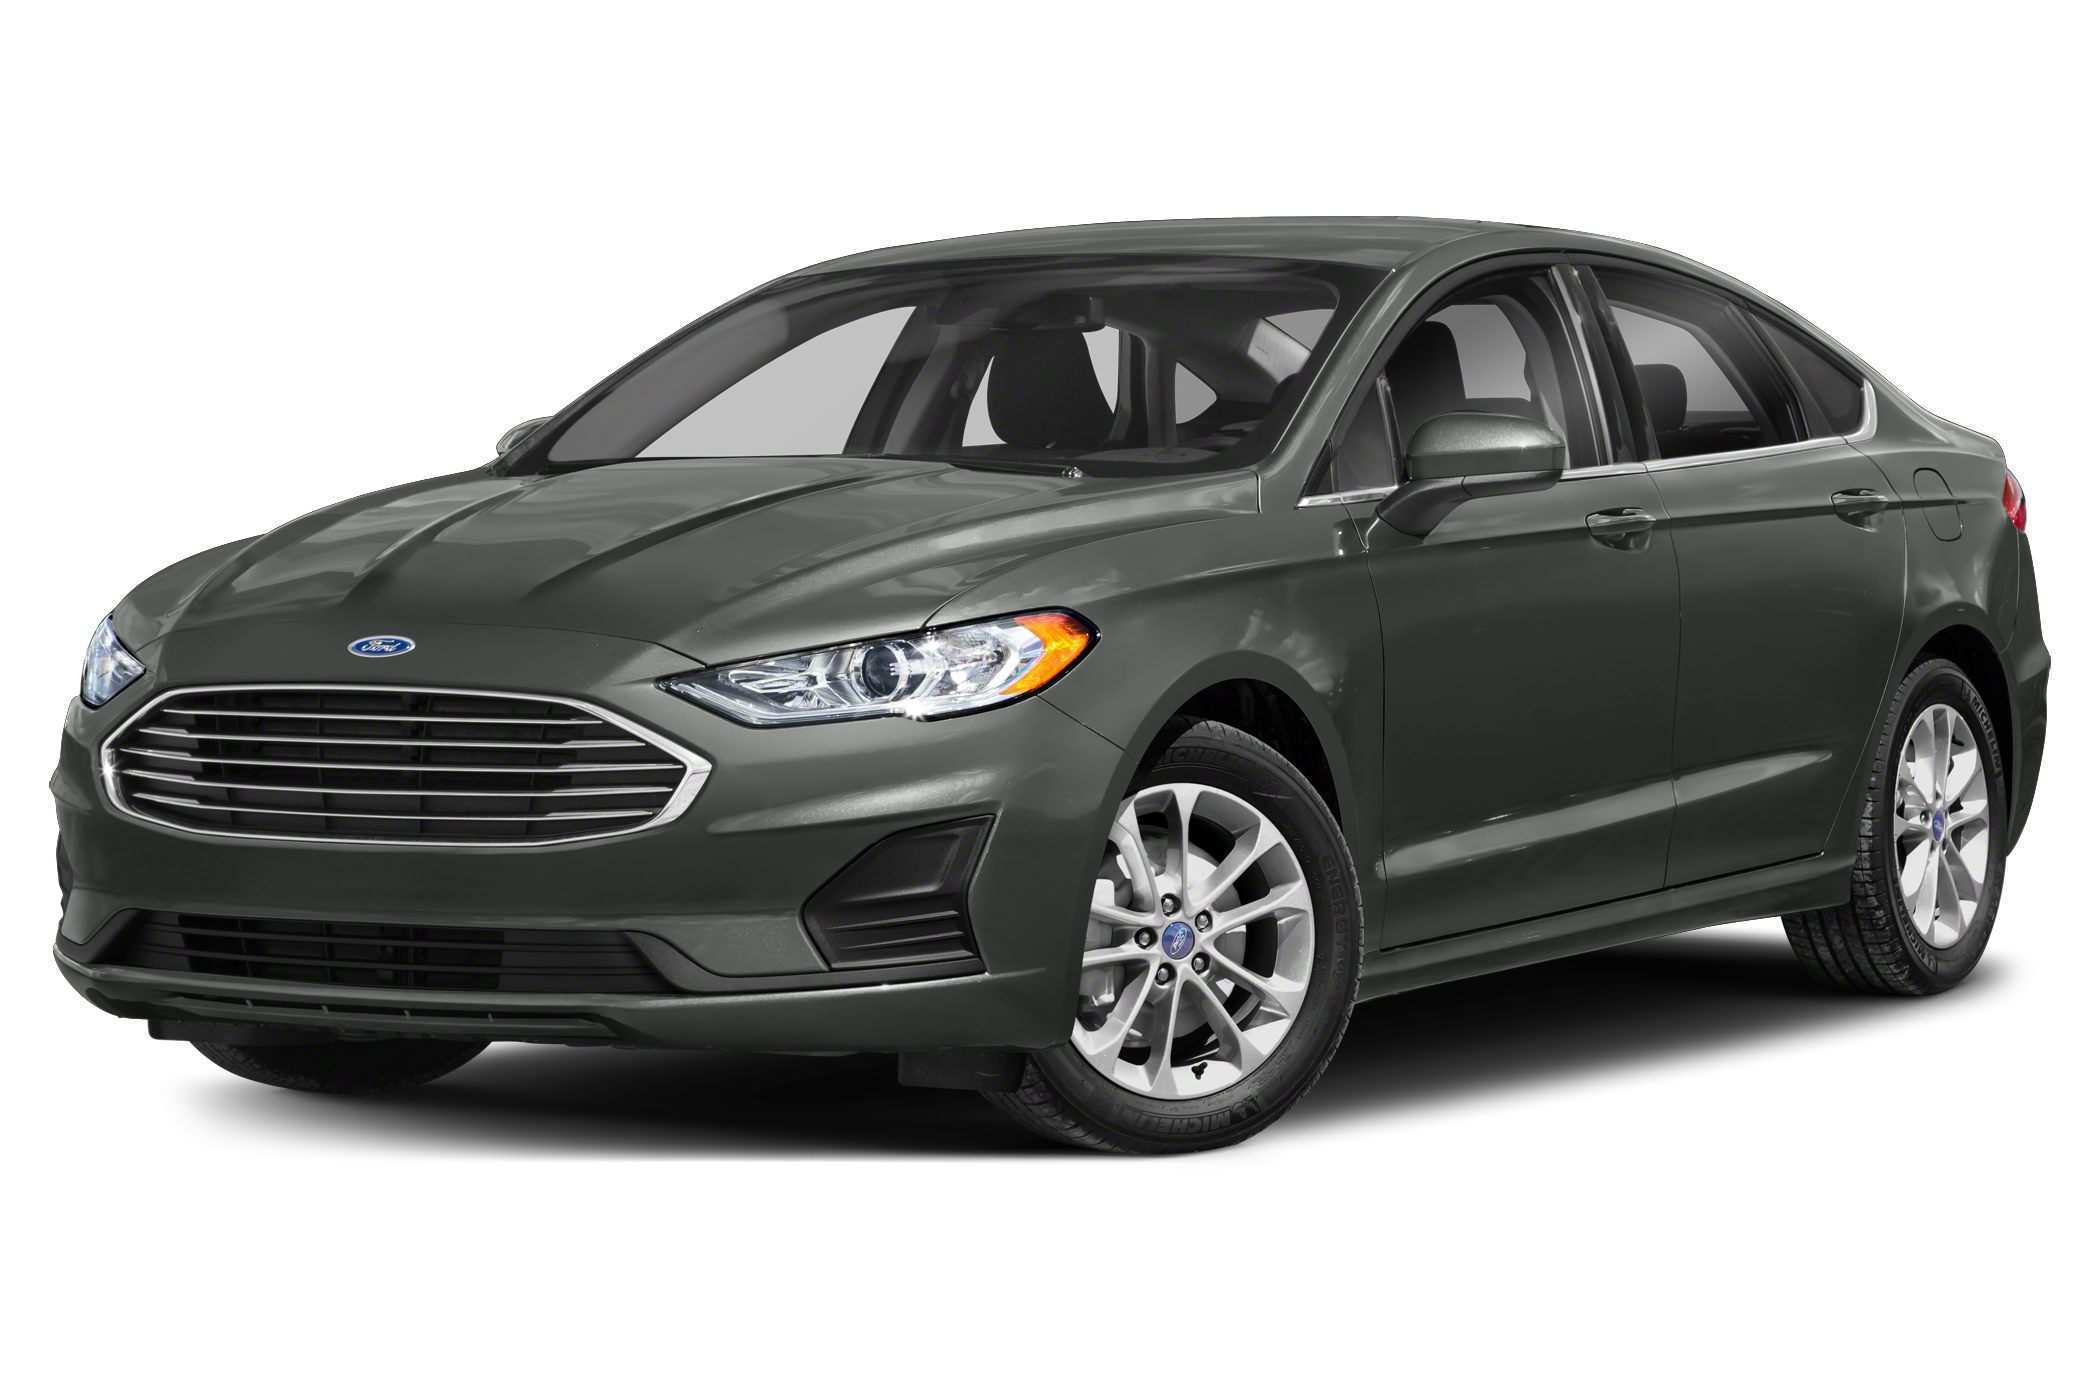 24 New 2019 Ford Fusion Overview